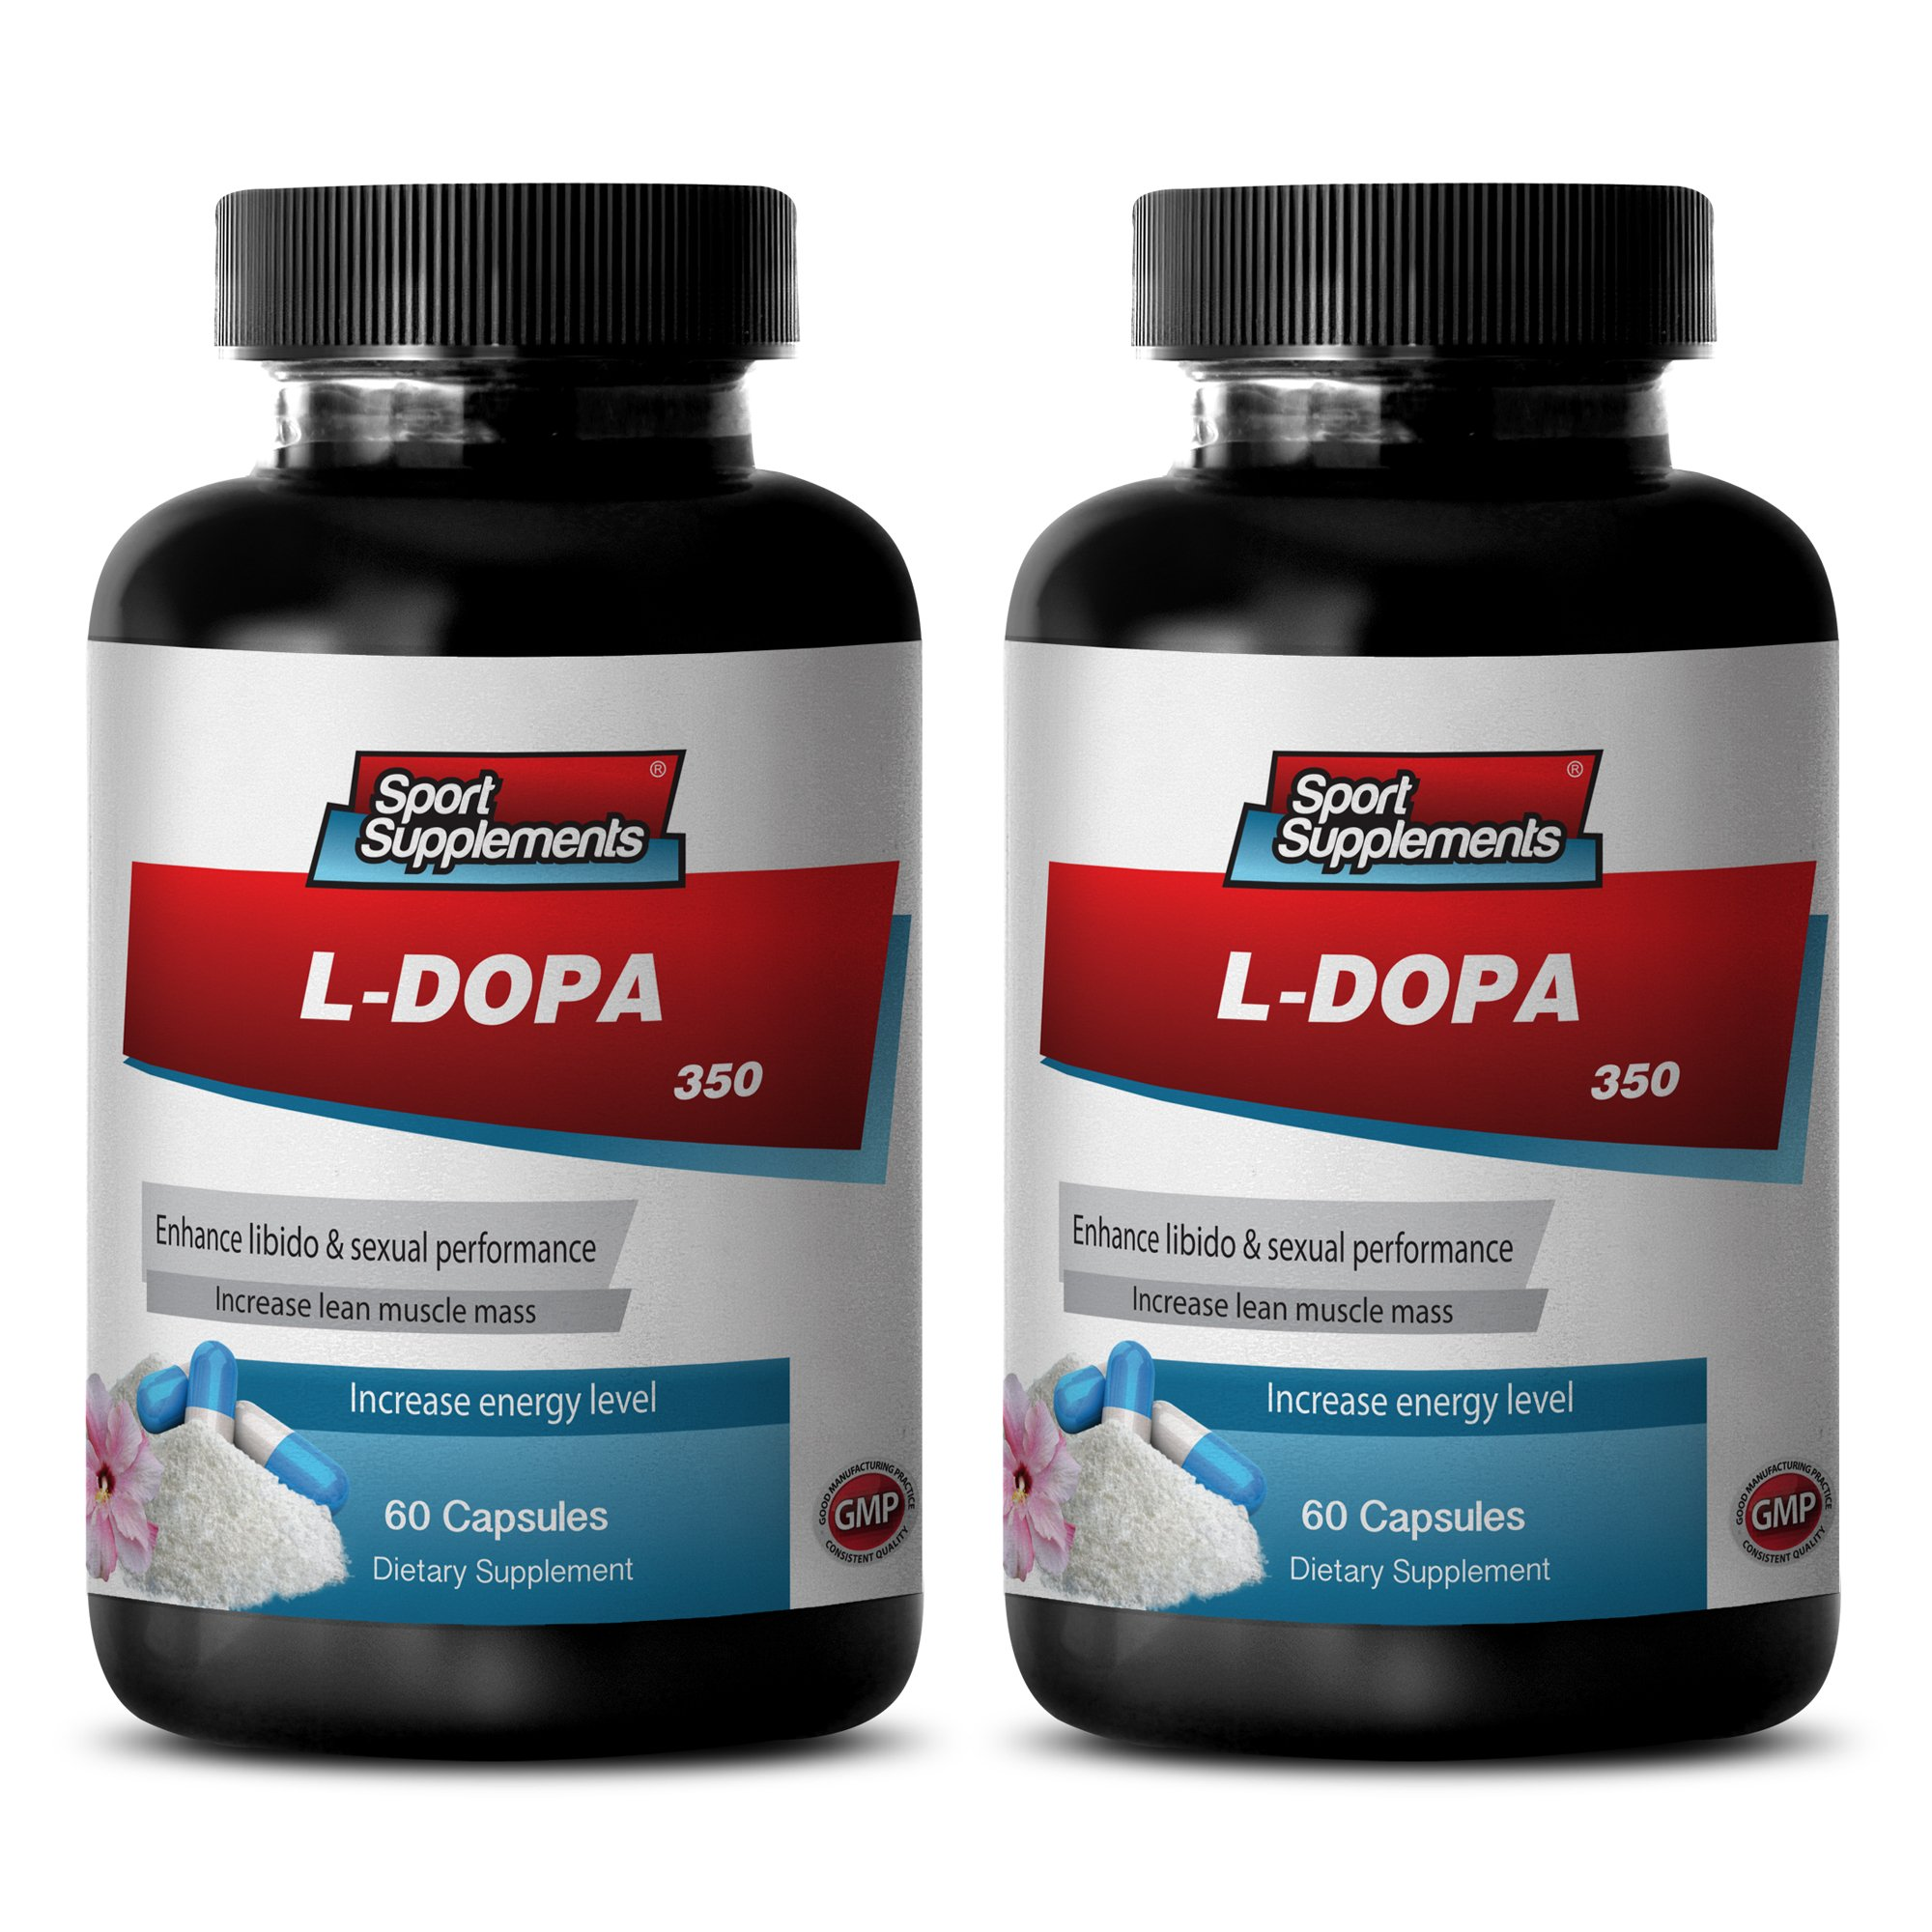 Mood booster supplements - L-DOPA (MUCUNA PRURIENS EXTRACT) 350 Mg - l-dopa now - 2 Bottles 120 Capsules